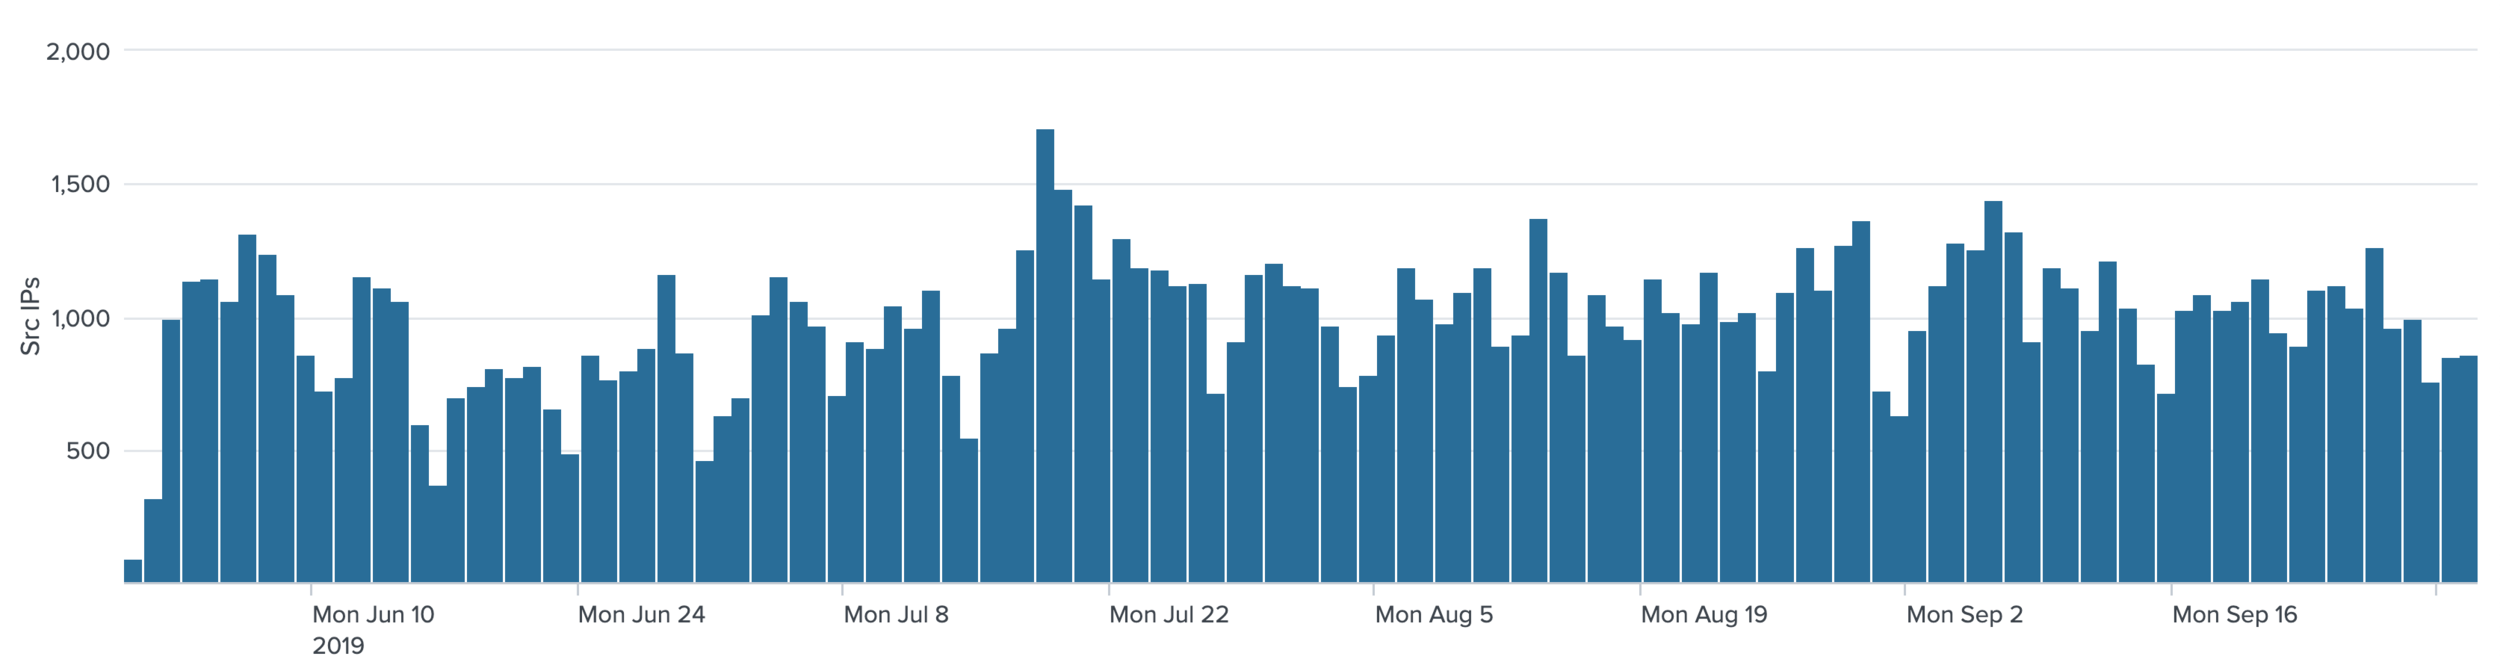 Figure 3 - Number of attacking IPs to our SMB Honeypot (1 device) from June 1st to October 1st. Source:  Aposemat Project .